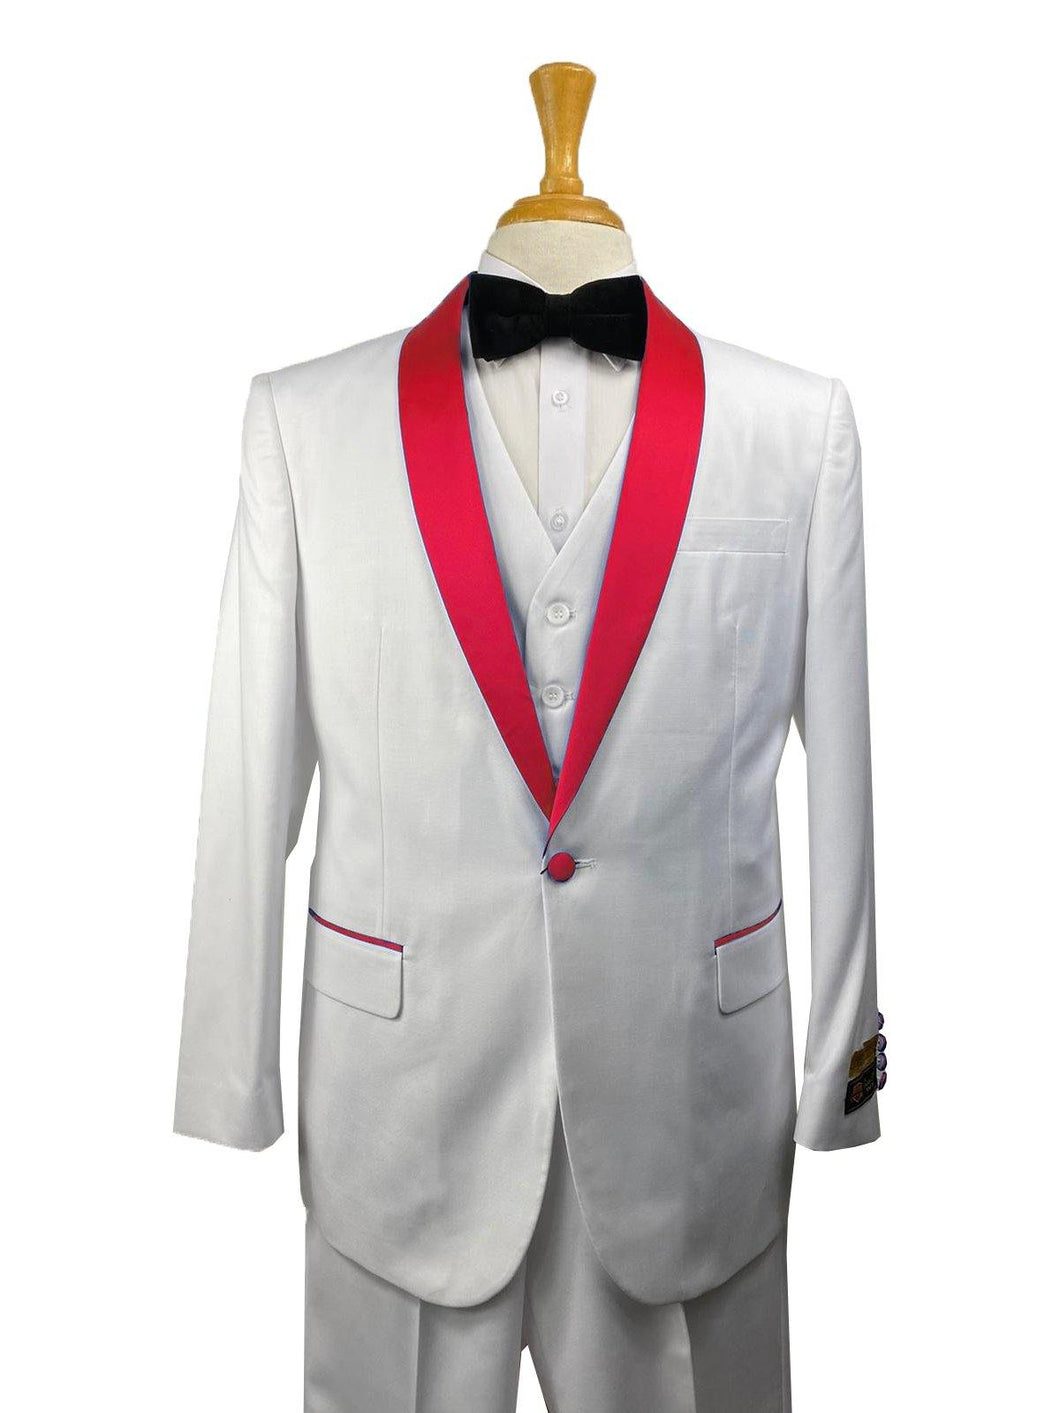 32-C-TUX-SH	WHITE-RED -  Tuxedo Wholesale  Distributors - AlbertoNardoniStore